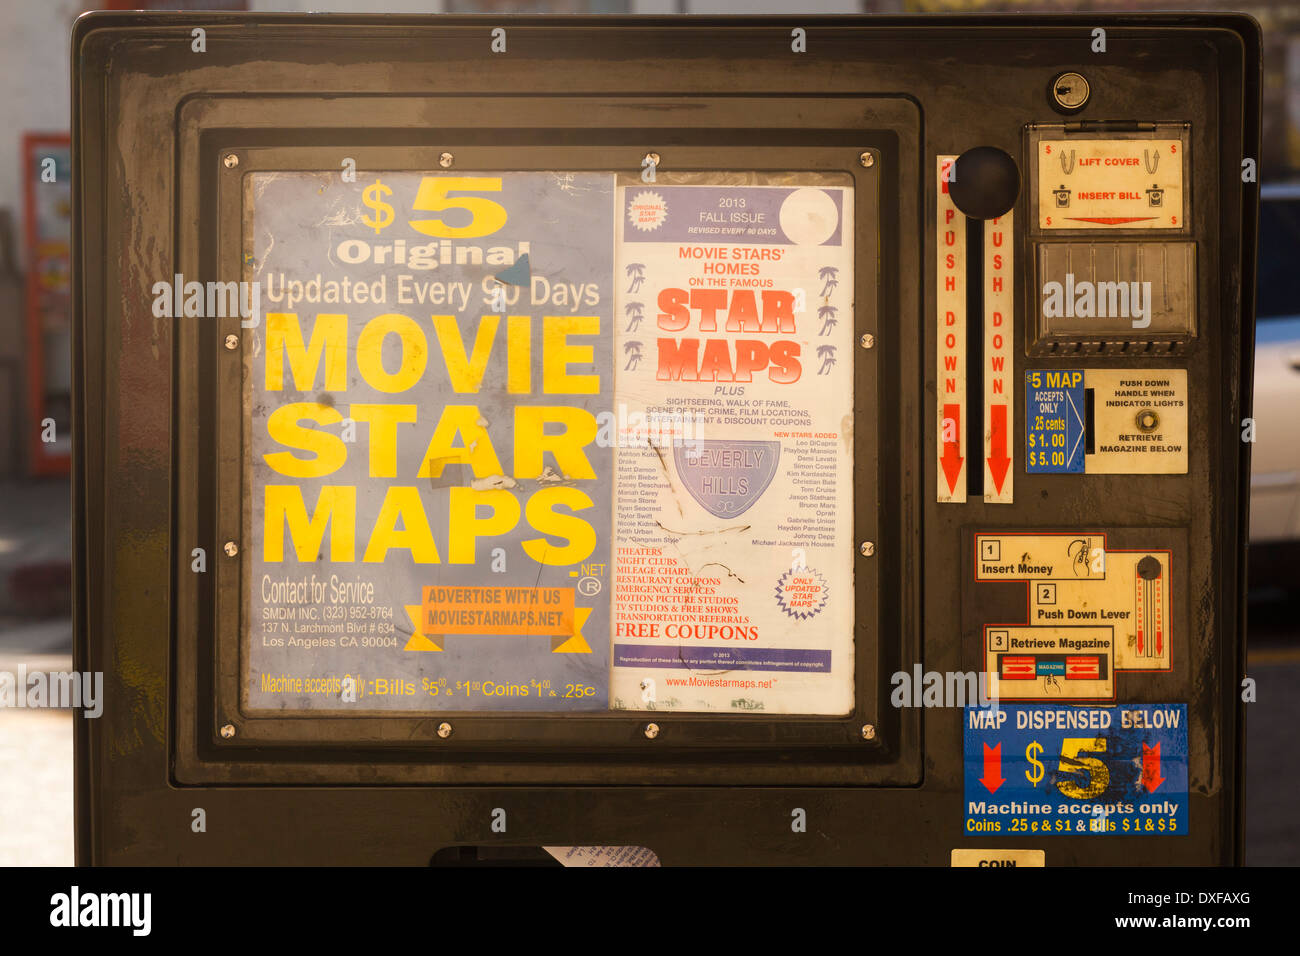 Map Of America Hollywood.Movie Star Maps In A Dispenser On Hollywood Boulevard Los Angeles